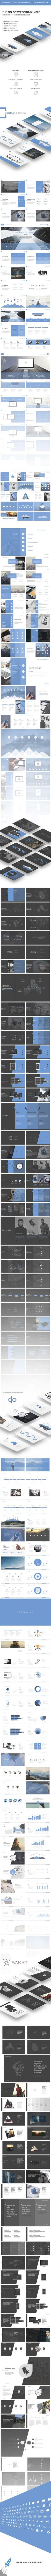 The Powerpoint Bundle Templates. Download here: http://graphicriver.net/item/the-powerpoint-bundle/16057840?ref=ksioks